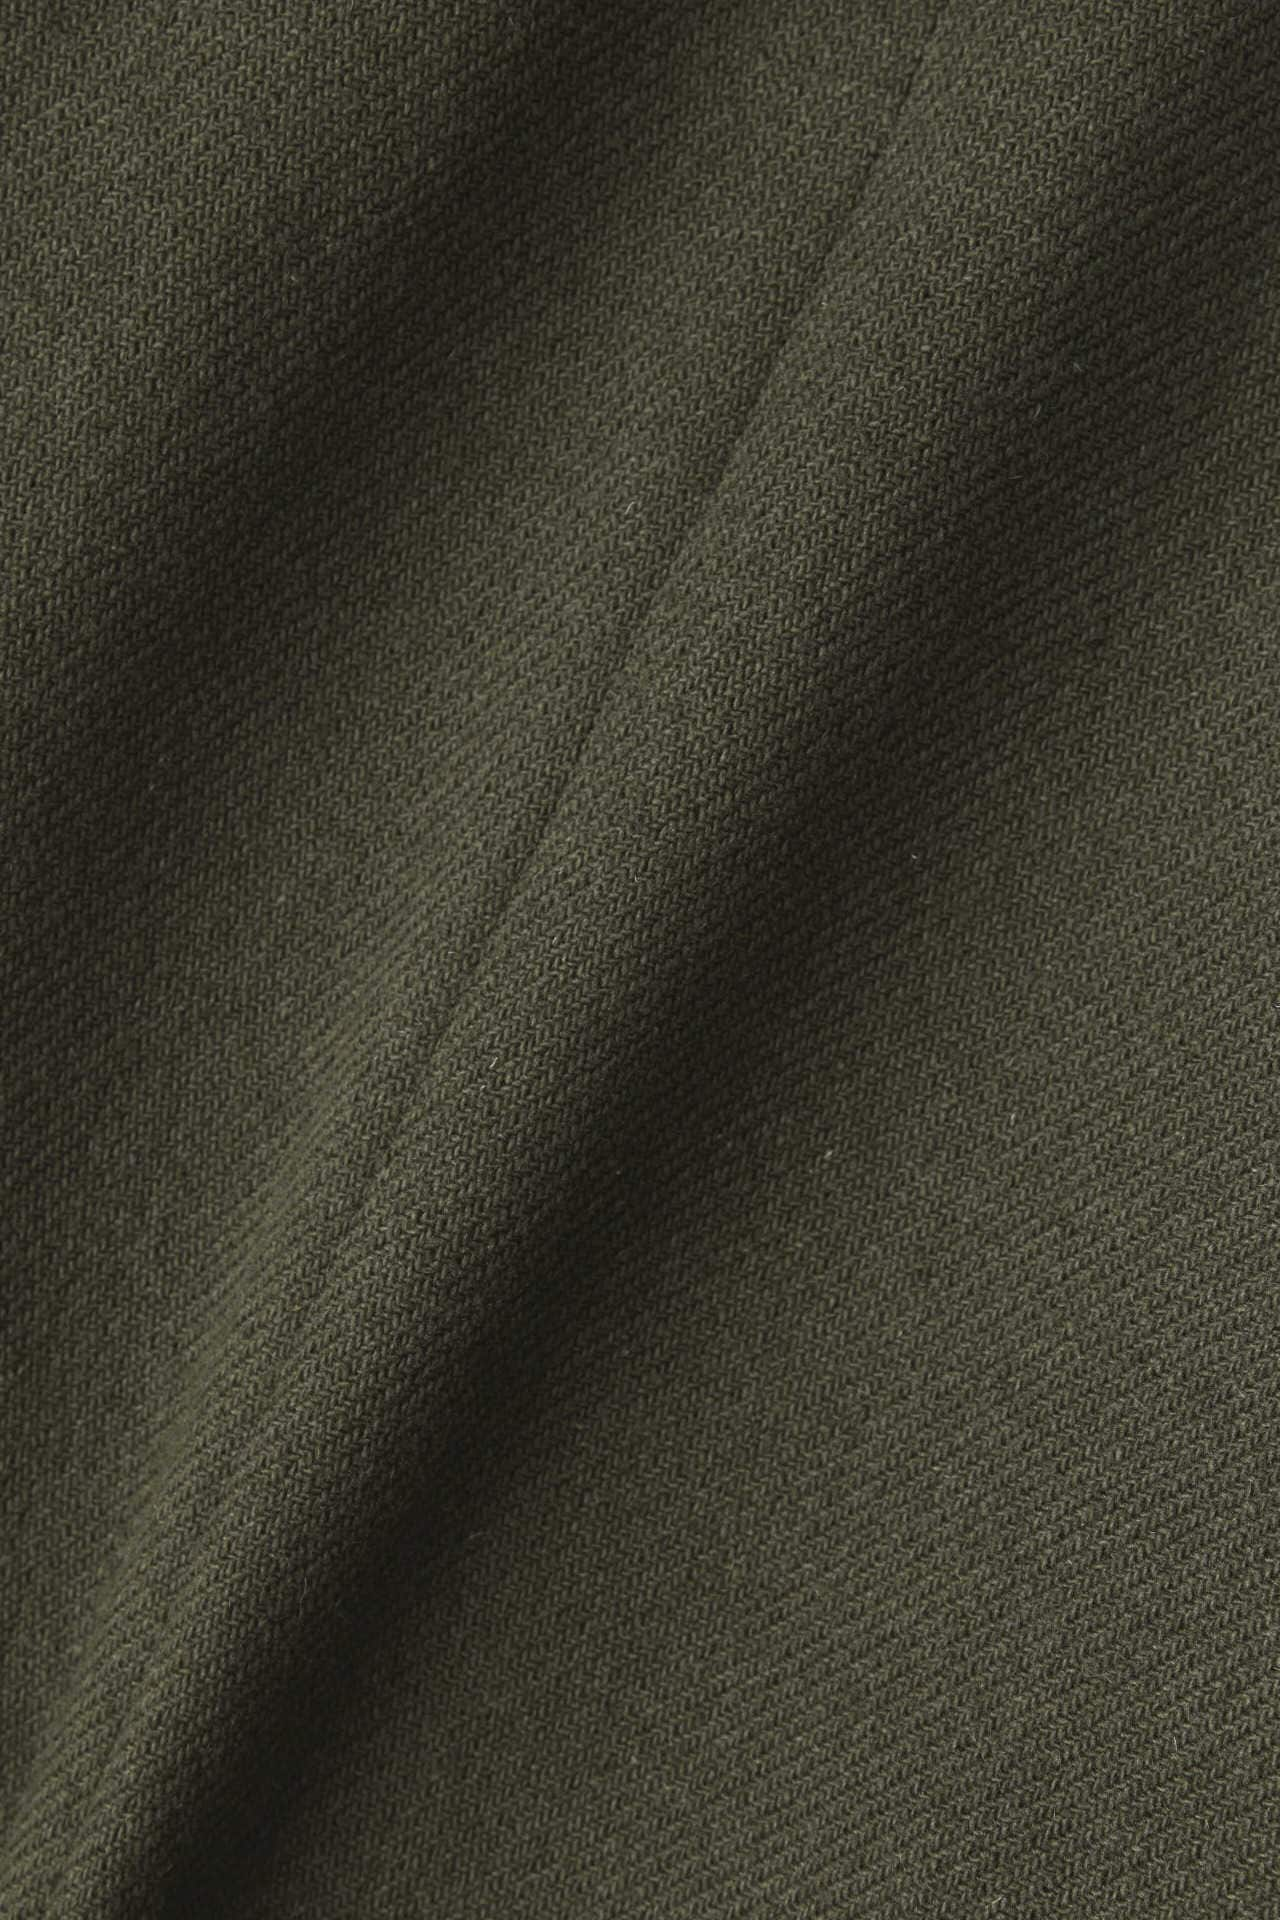 HEAVY TWILL WOOL13